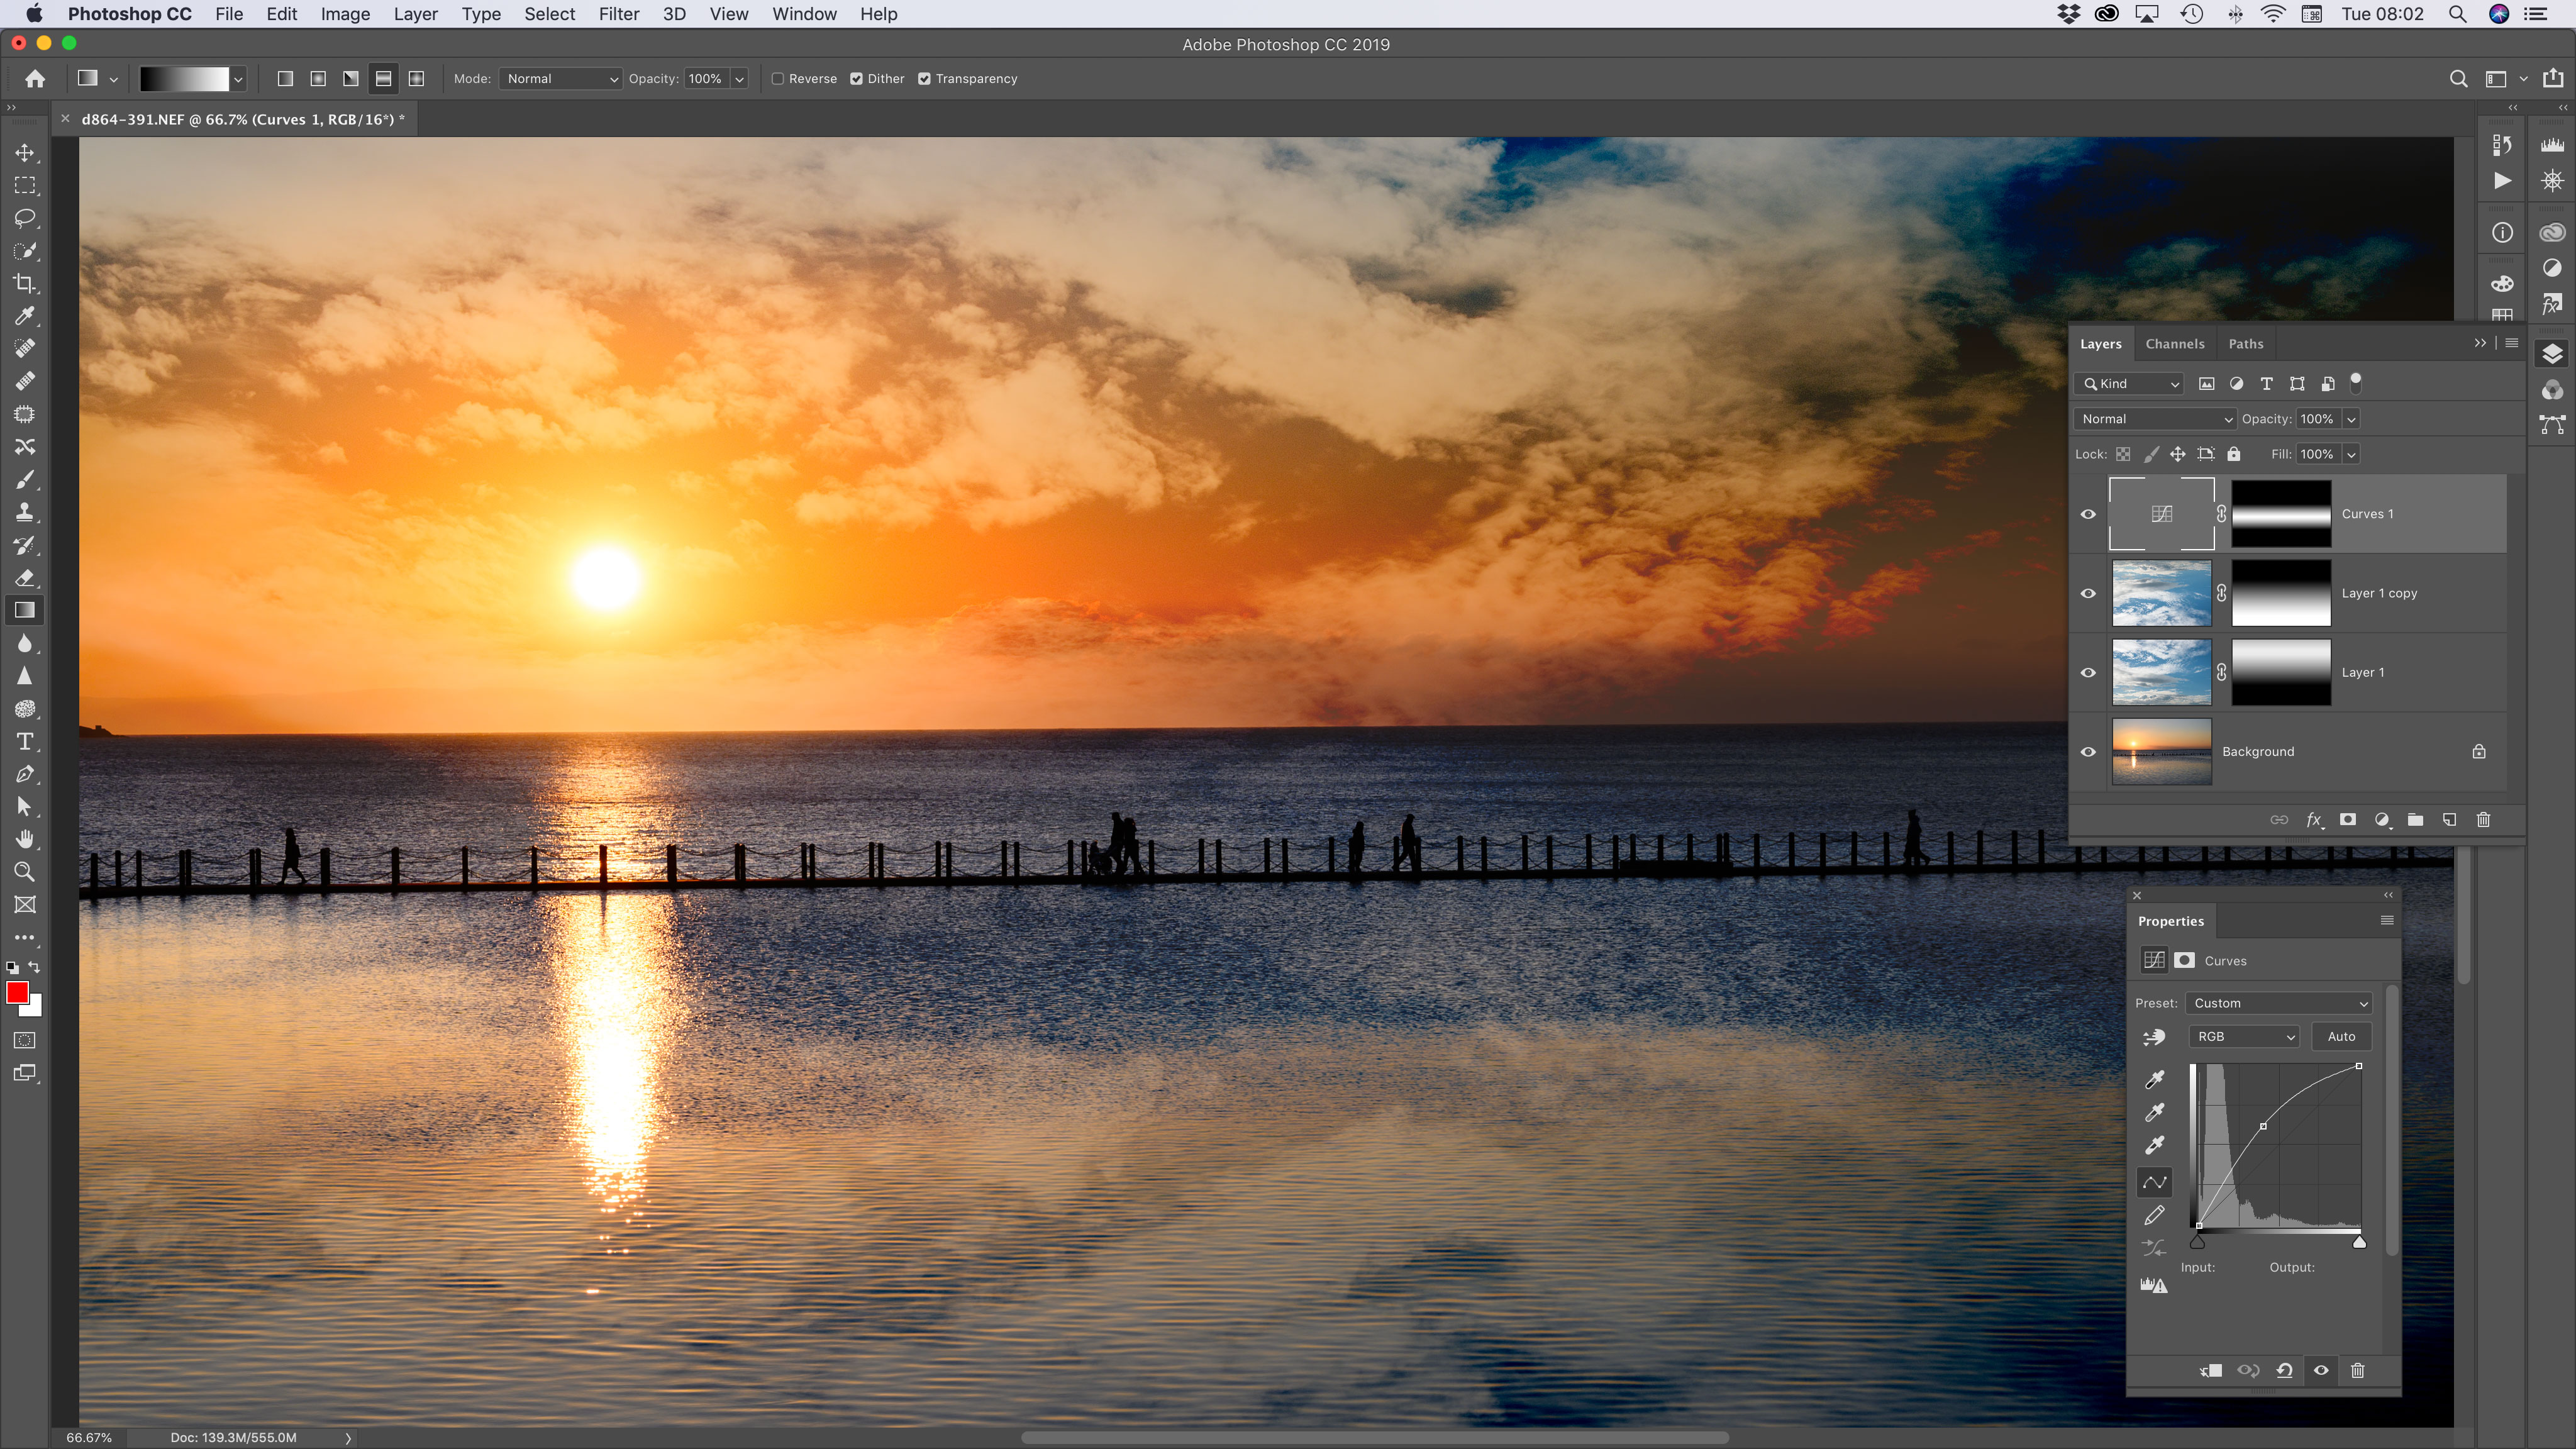 Here is the Photoshop CS6 Extended Trial